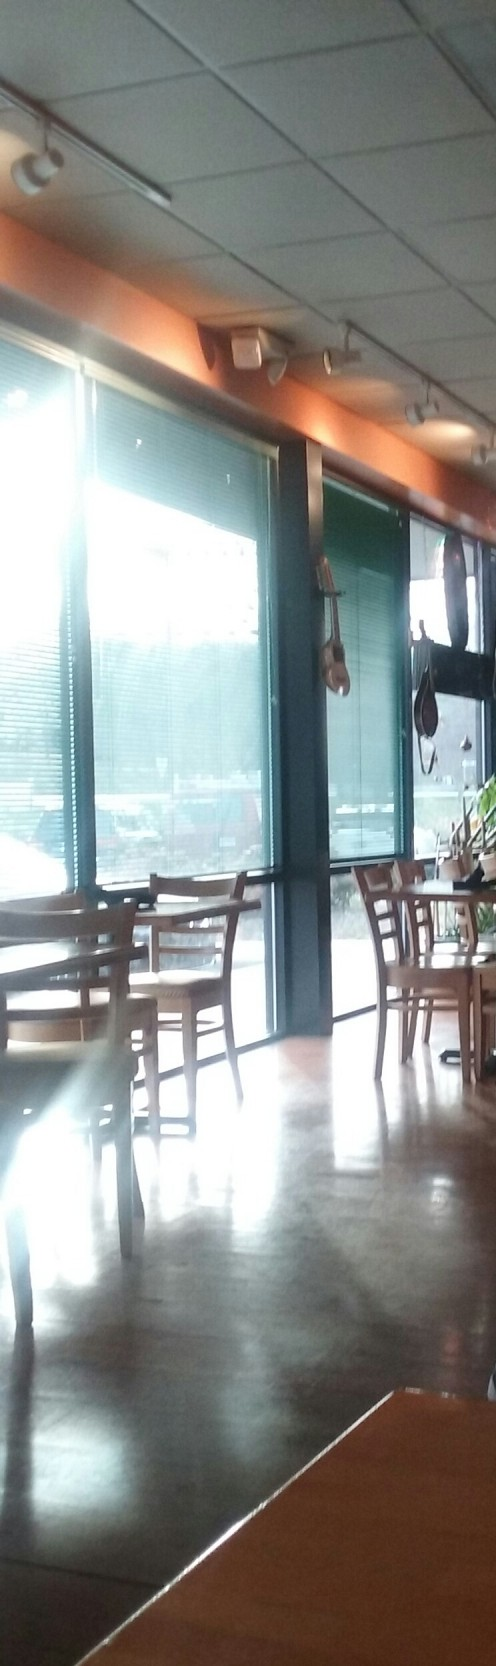 A bright and airy atmosphere at the spacious Thai Chiang Mai Restaurant in Greensboro, North Carolina where hot, fresh and tasty Thai food is served.